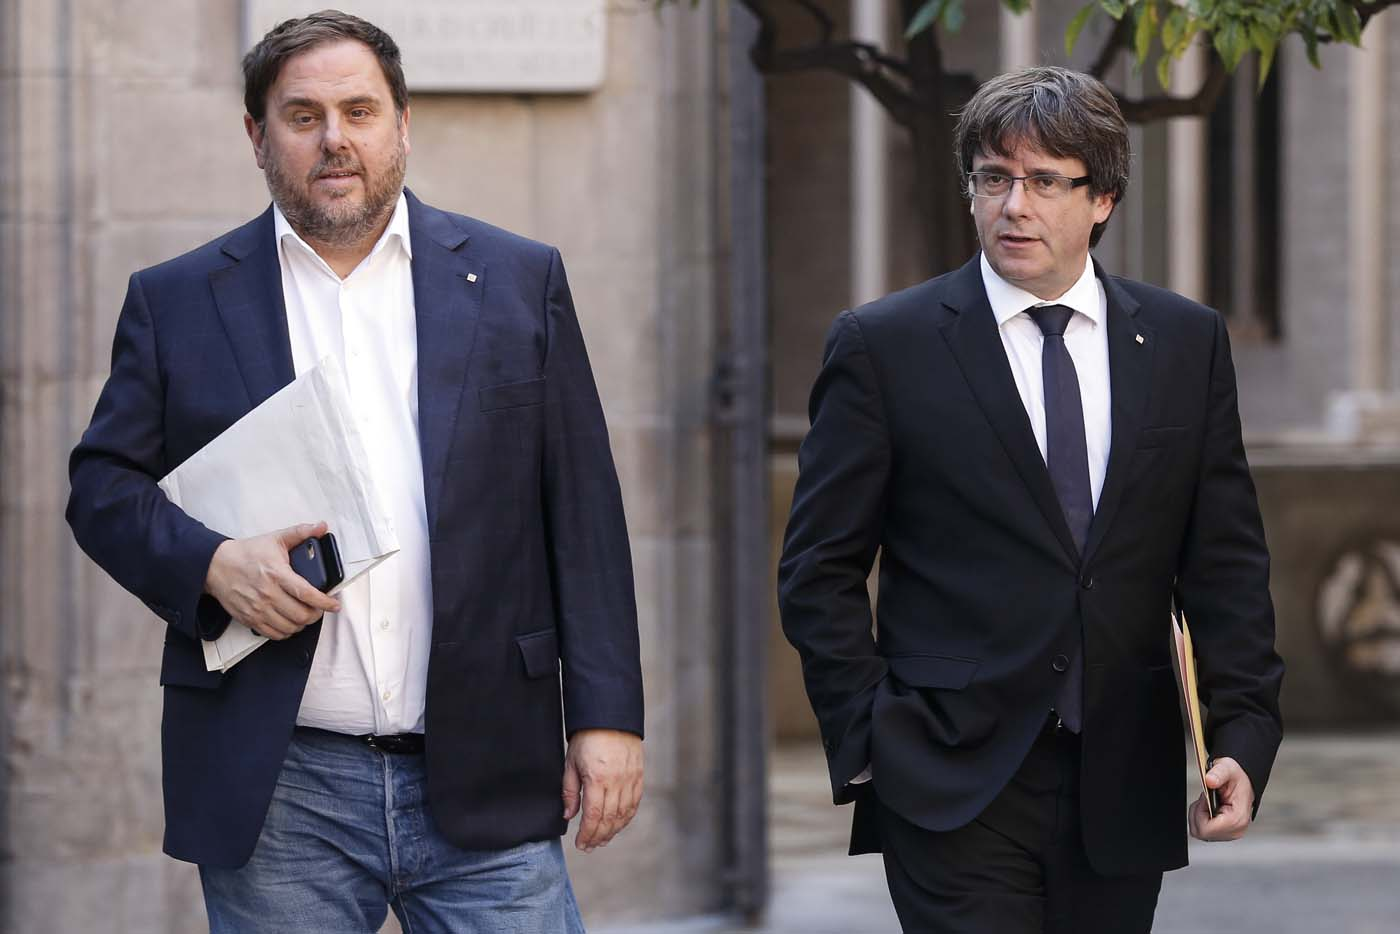 Catalan regional government president Carles Puigdemont (R) and Catalan regional vice president and chief of economy and finance Oriol Junqueras arrive for a regional government meeting at the Generalitat Palace in Barcelona on October 10, 2017. Spain's worst political crisis in a generation will come to a head as Catalonia's leader could declare independence from Madrid in a move likely to send shockwaves through Europe. / AFP PHOTO / PAU BARRENA